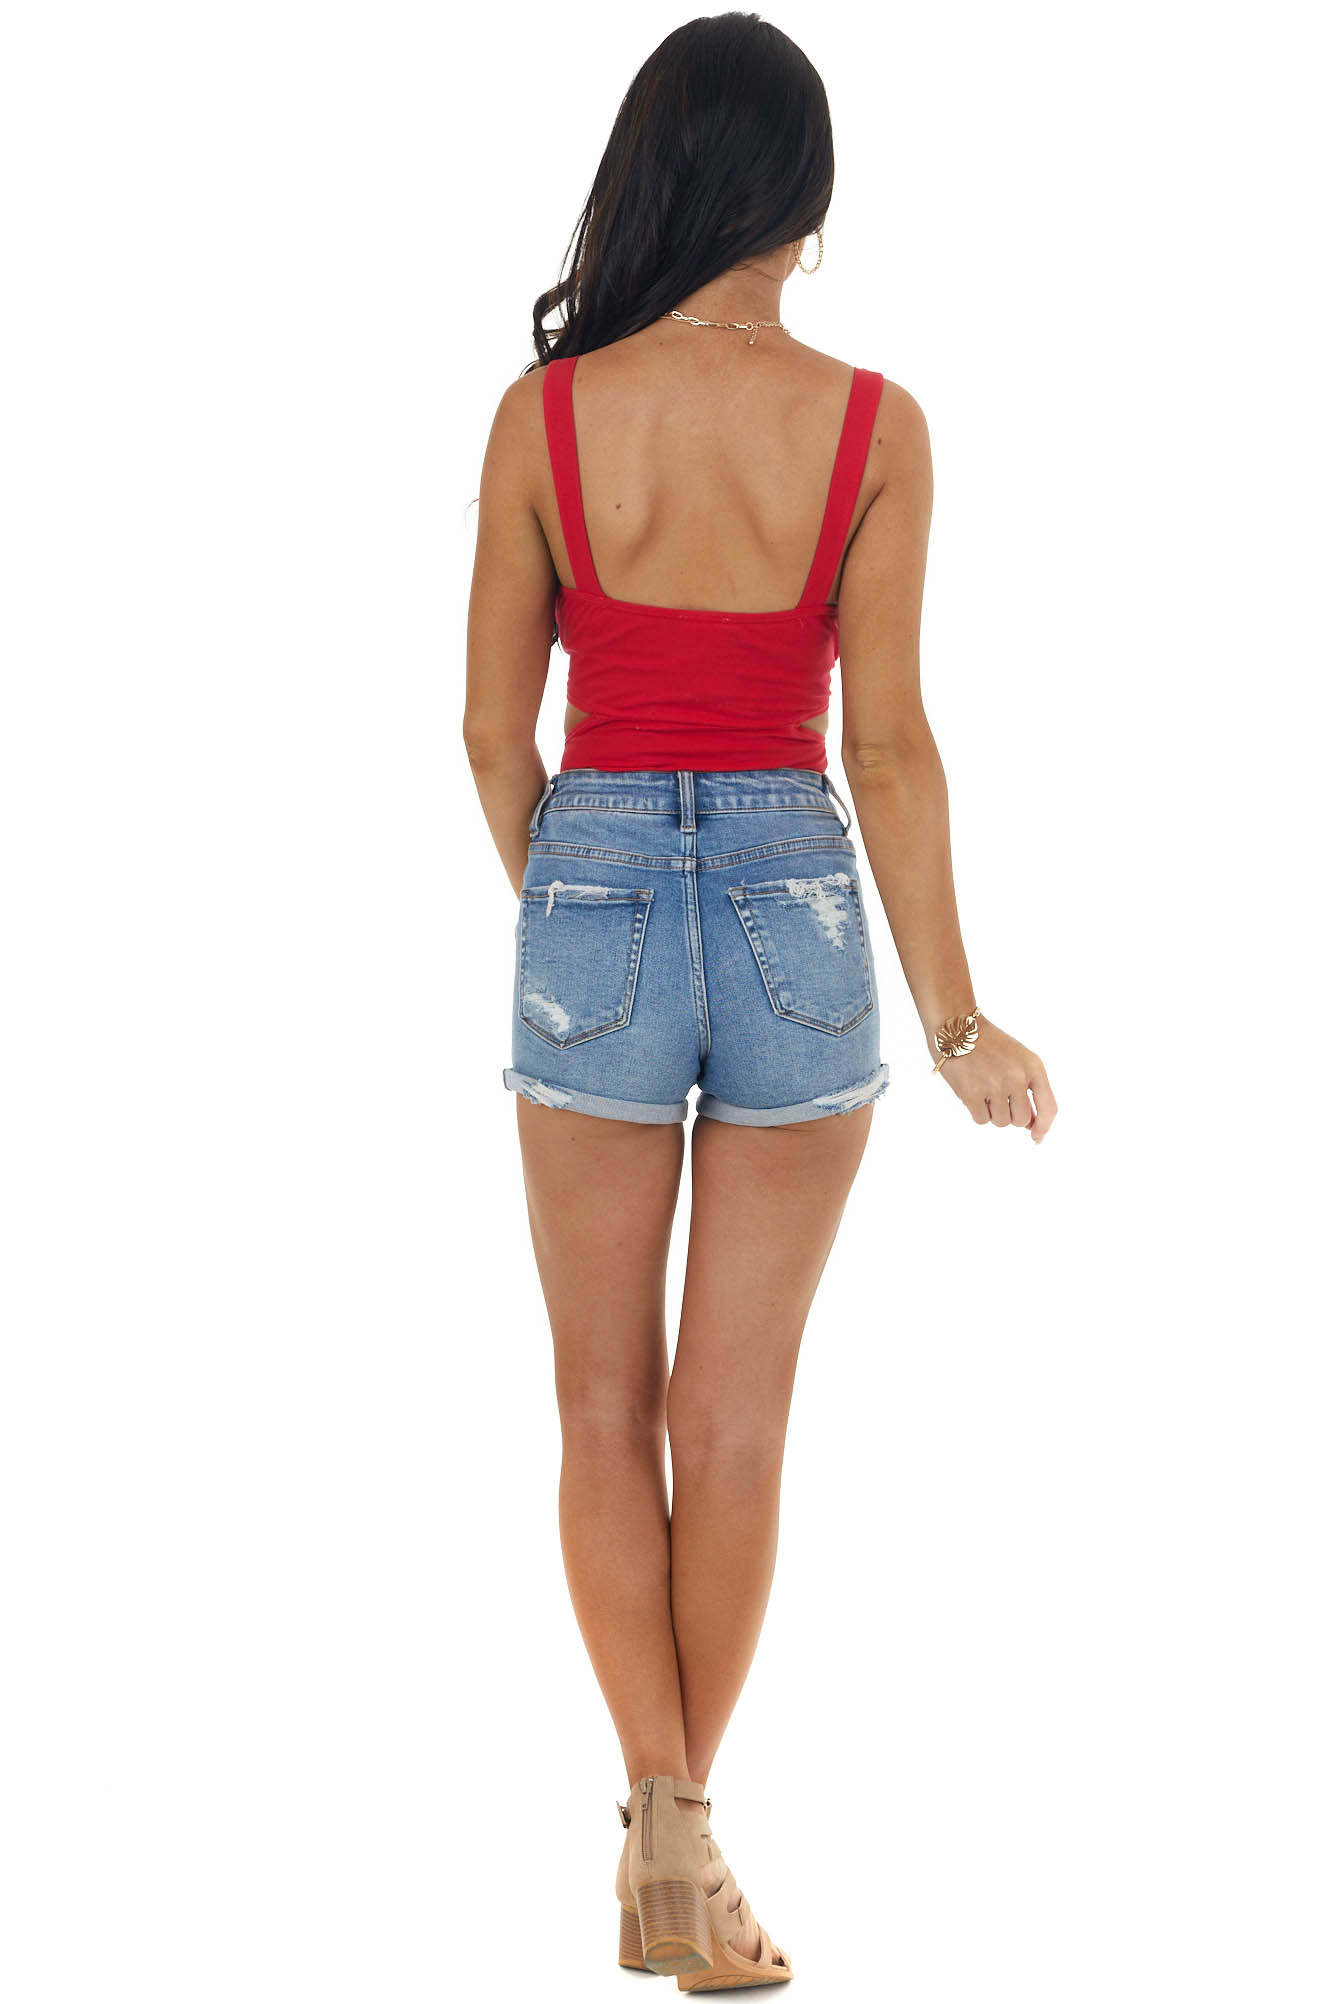 Cherry Sleeveless Bodysuit with Cut Out Detail